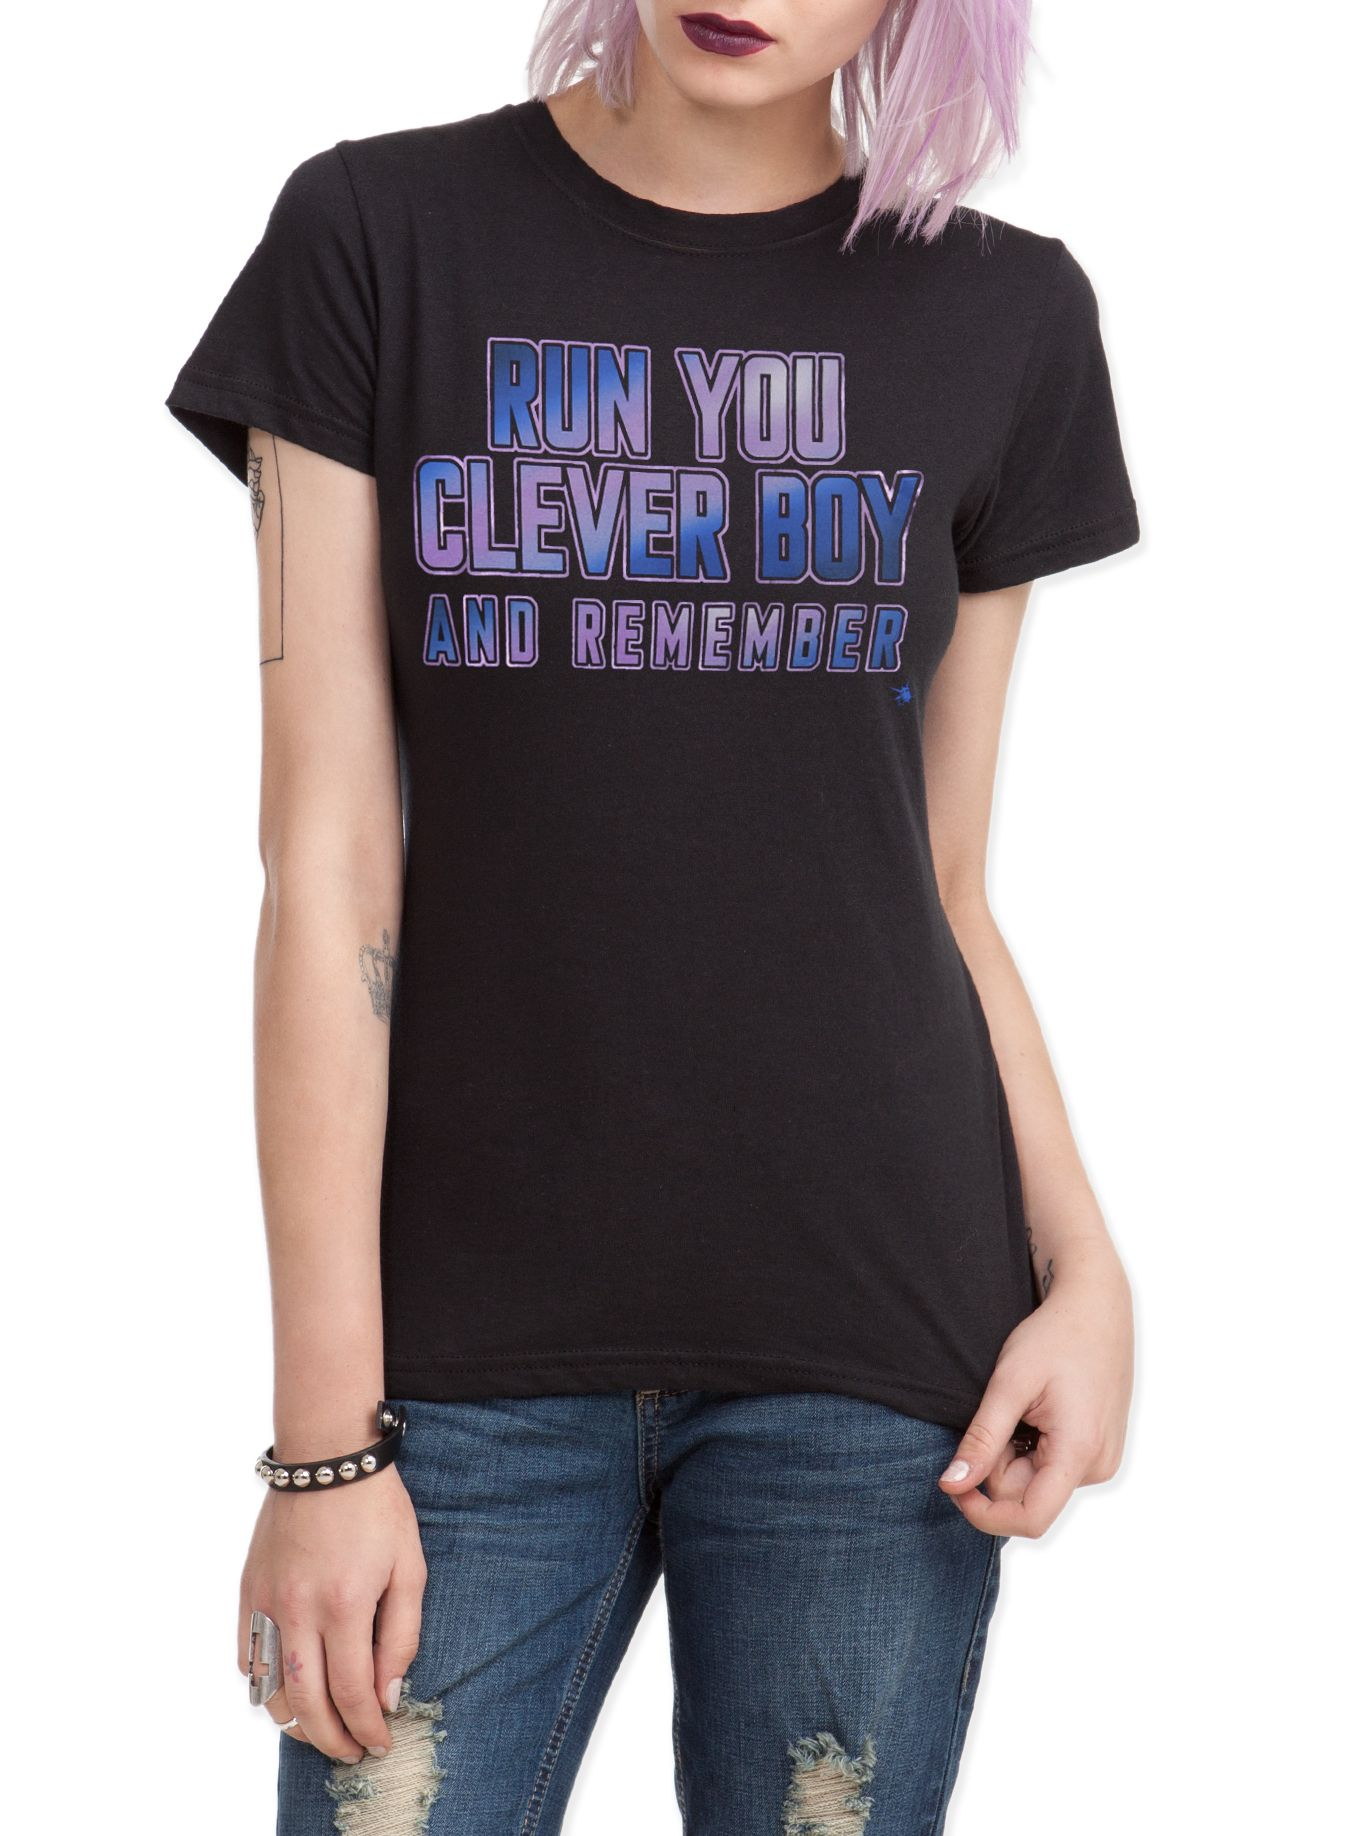 Doctor Who Her Universe Clever Boy Girls T-Shirt | Hot Topic